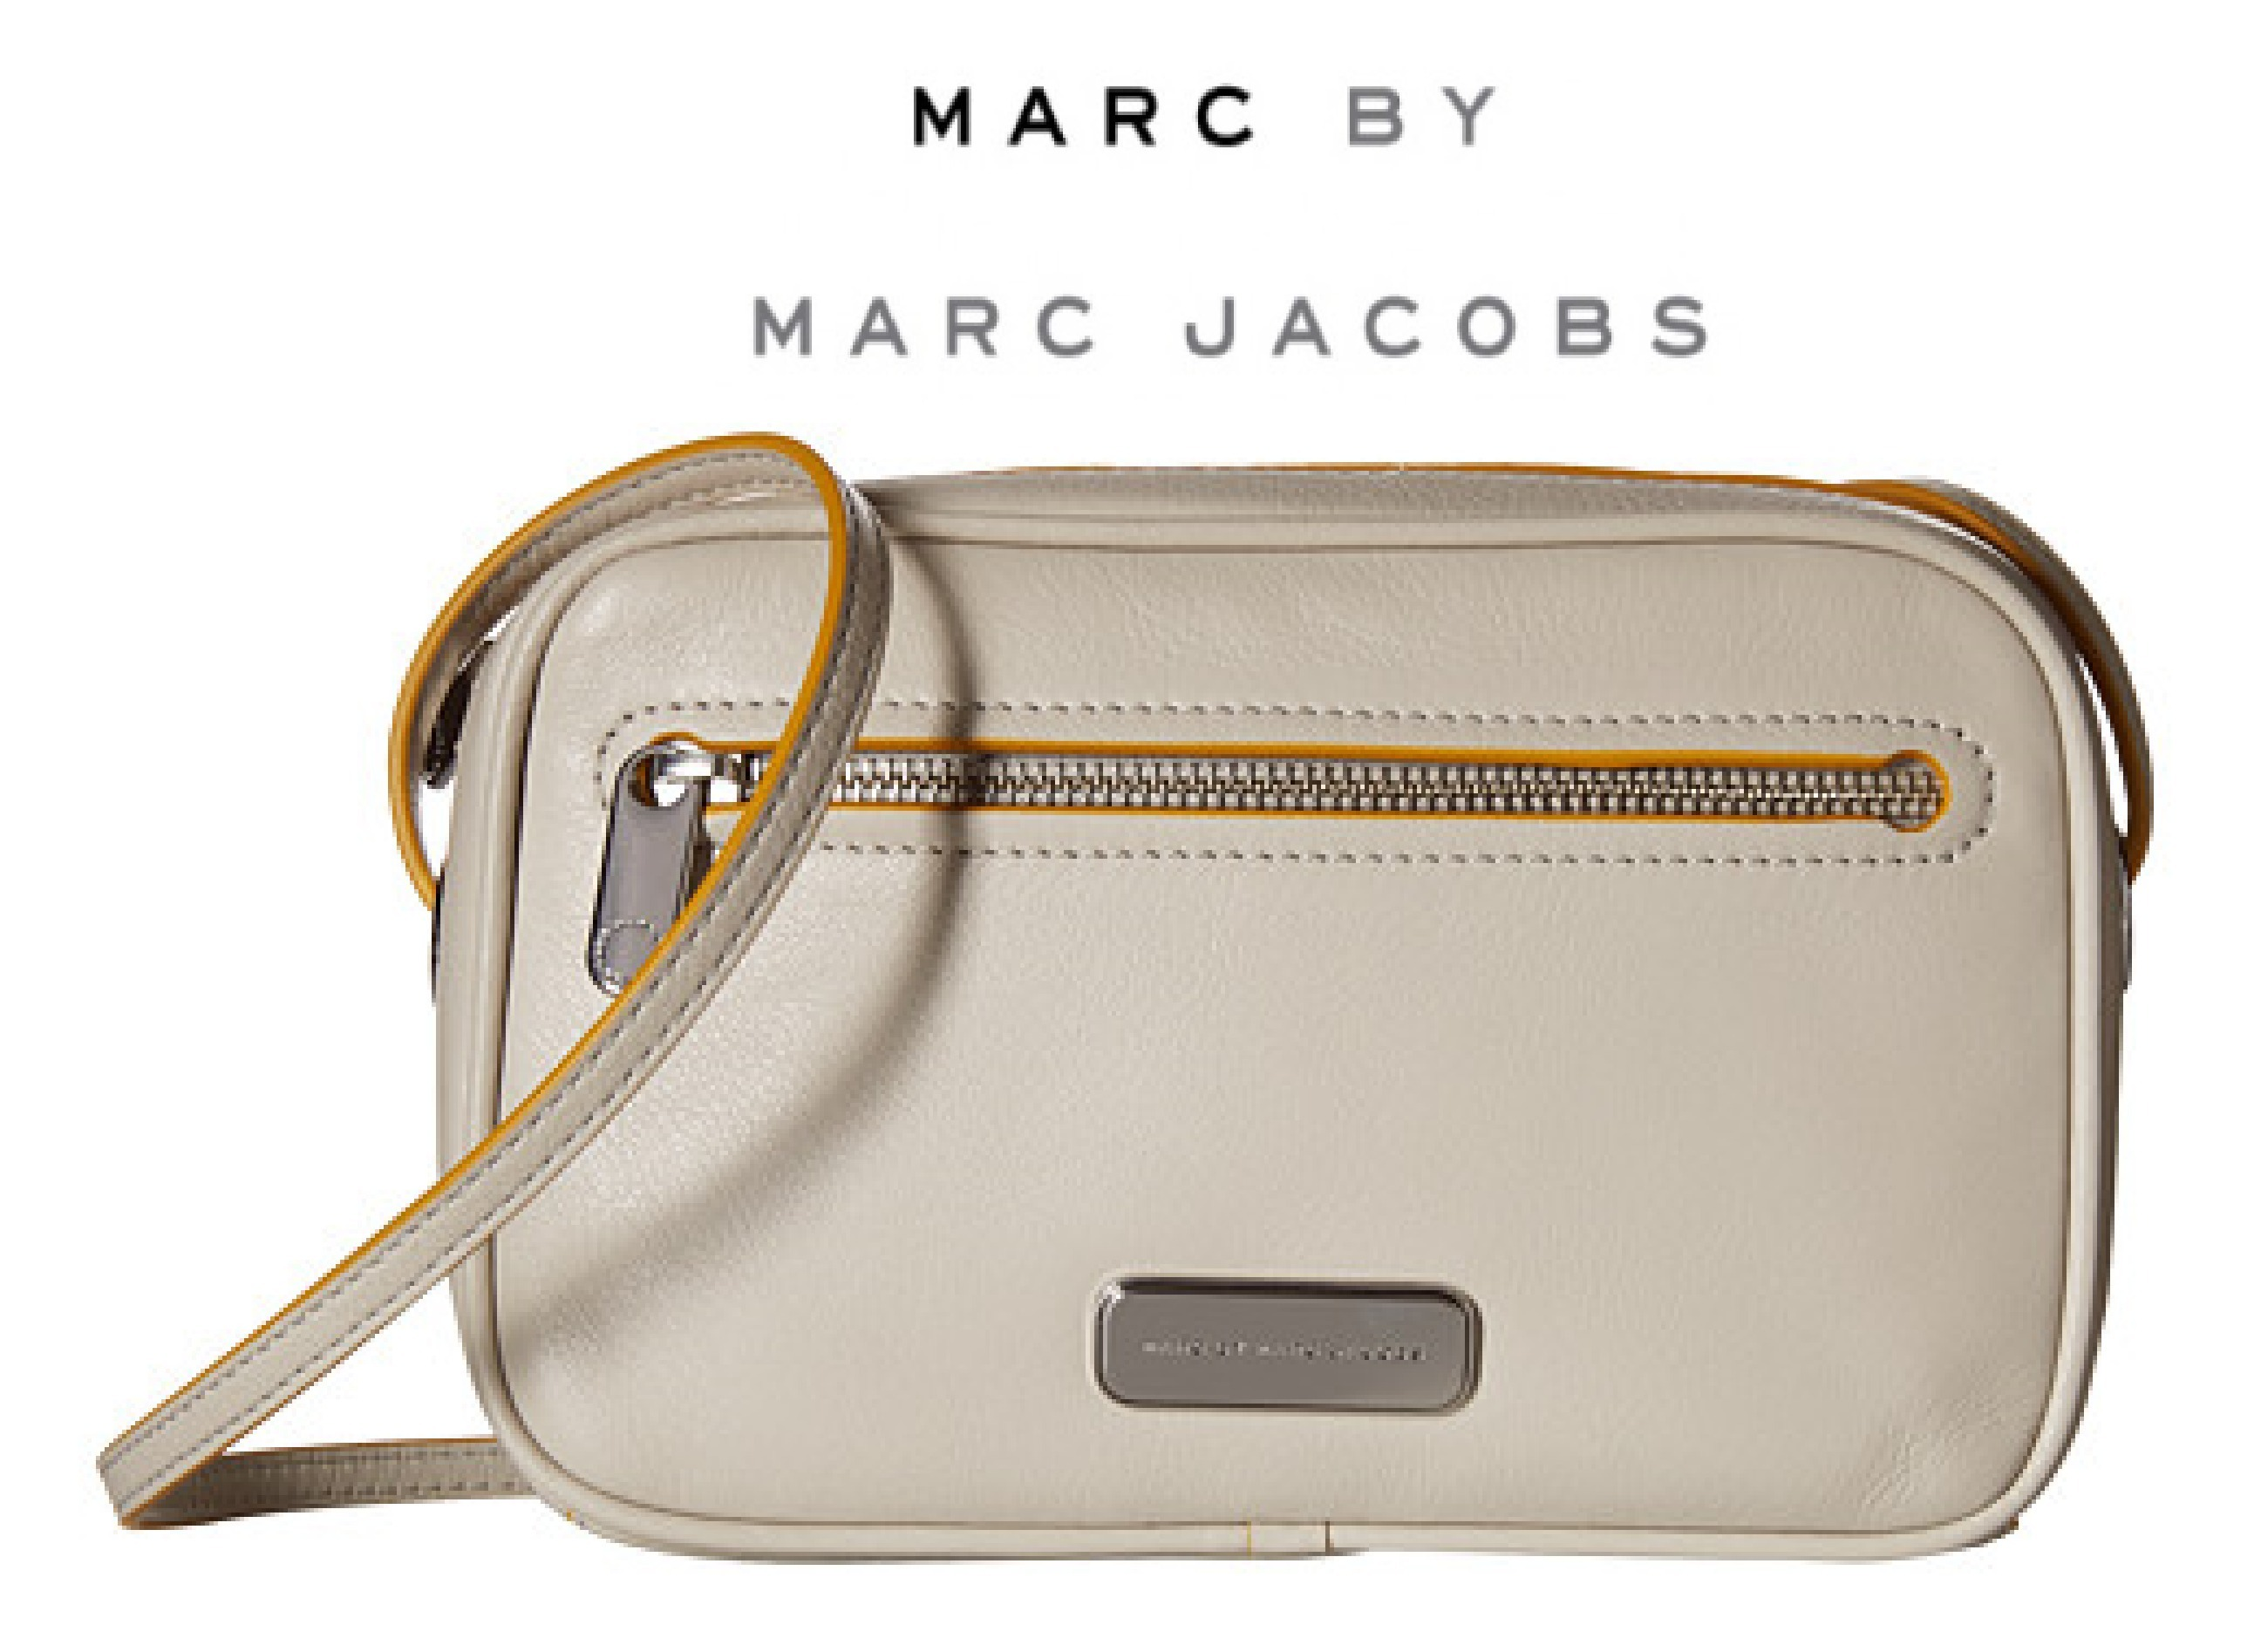 特価SALE☆早い者勝ち【Marc by Jacobs】Sally Solid Handbag ☆